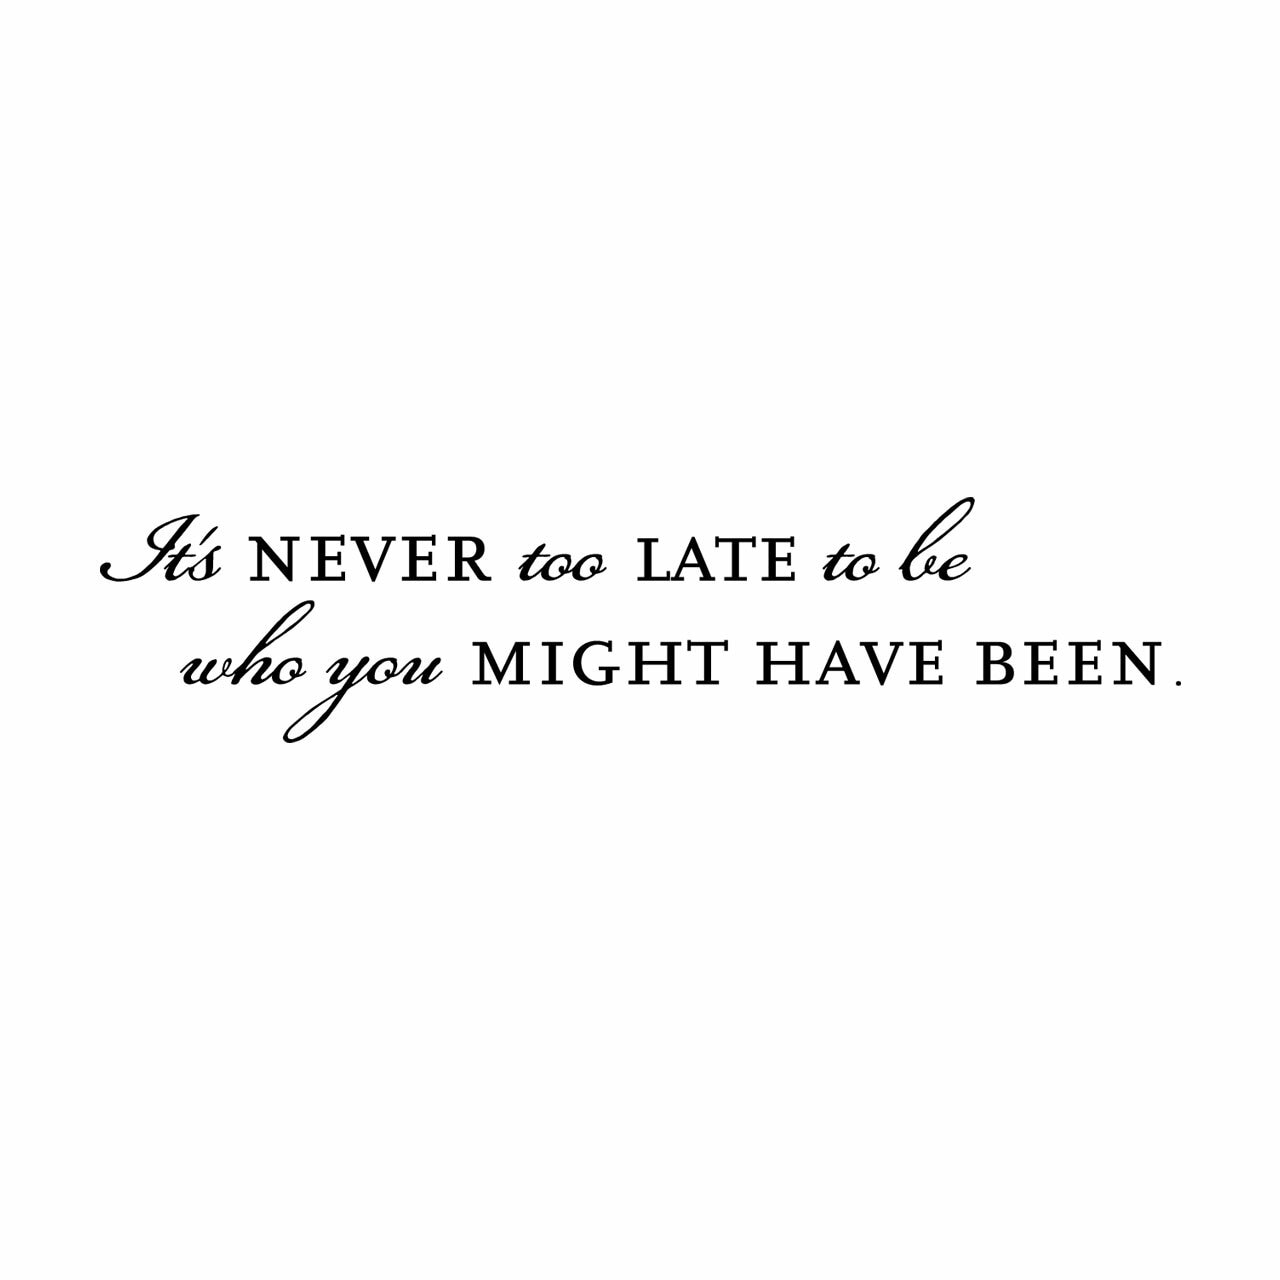 It's never too late to become who you might have been vinyl lettering layout in black on white background